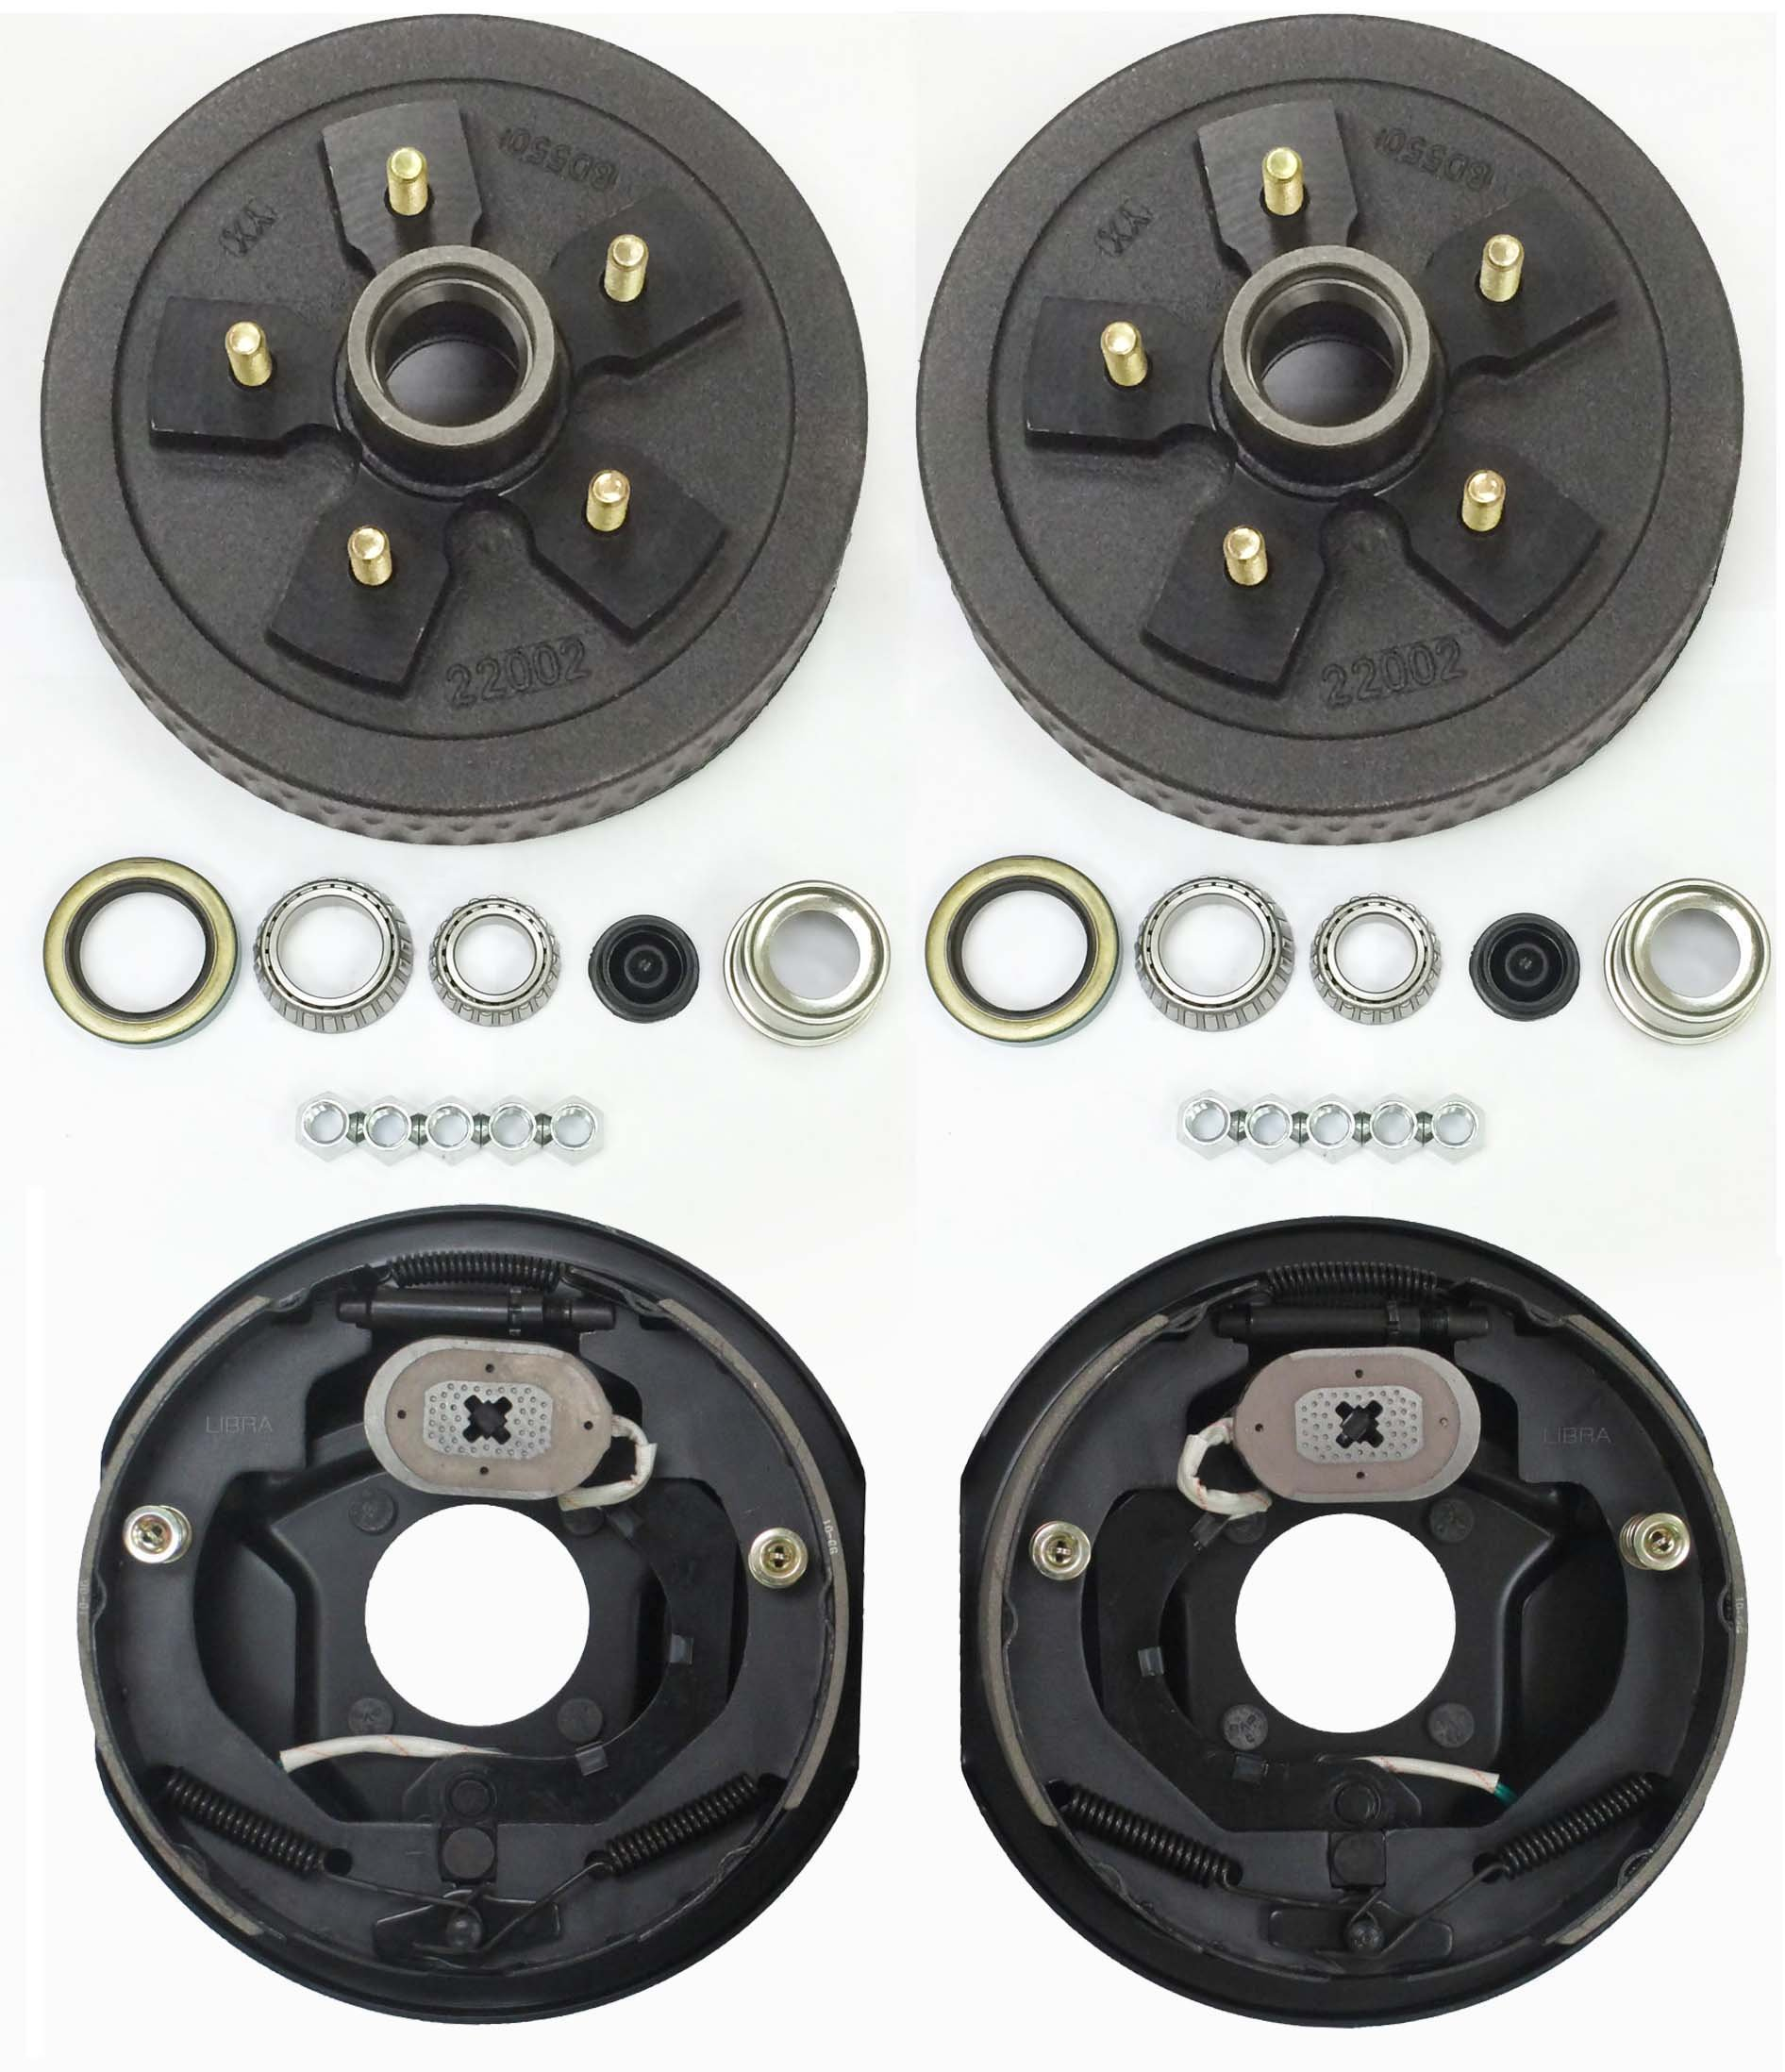 LIBRA Trailer 5 on 5'' B.C. Hub Drum Kits with 10'' x2-1/4 Electric Brakes for 3500 Lbs Axle by LIBRA